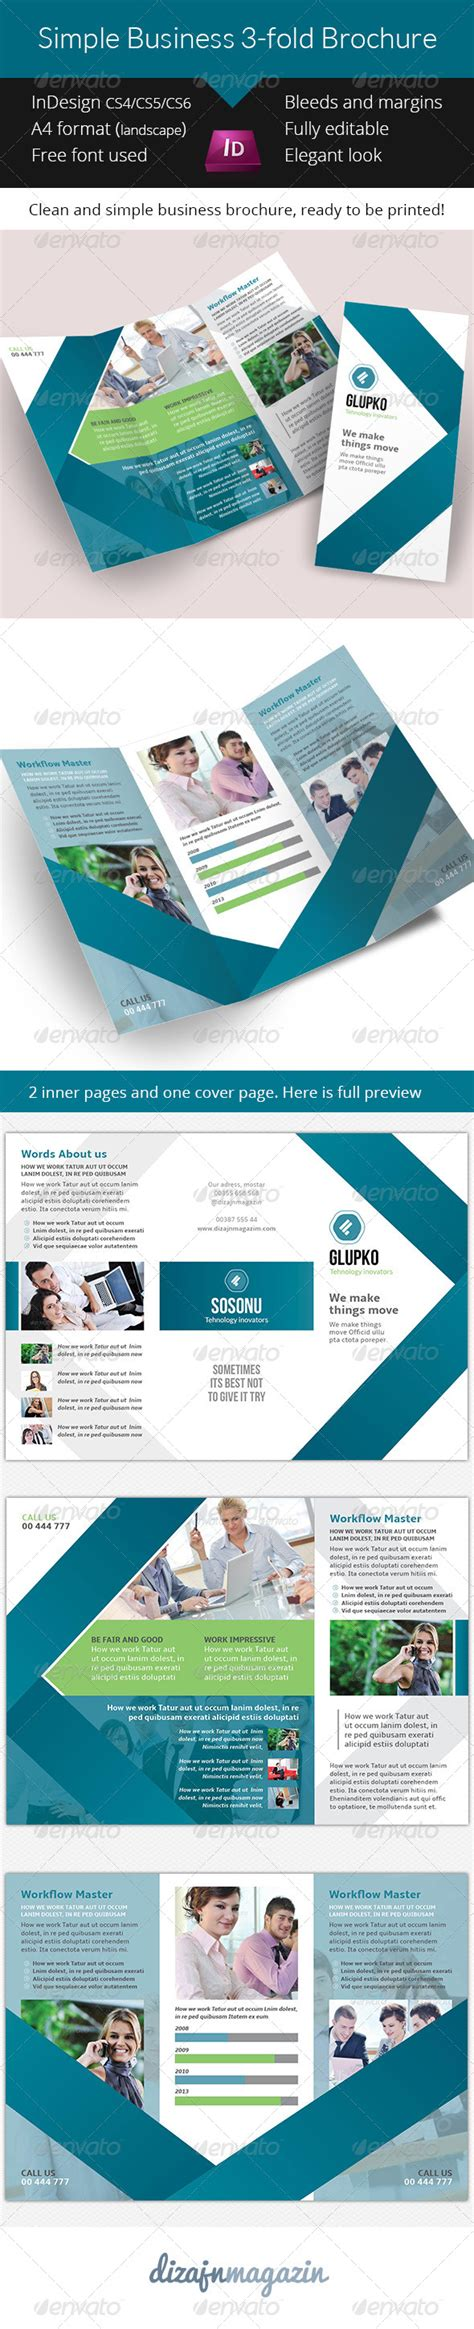 simple business 3 fold brochure indesign template